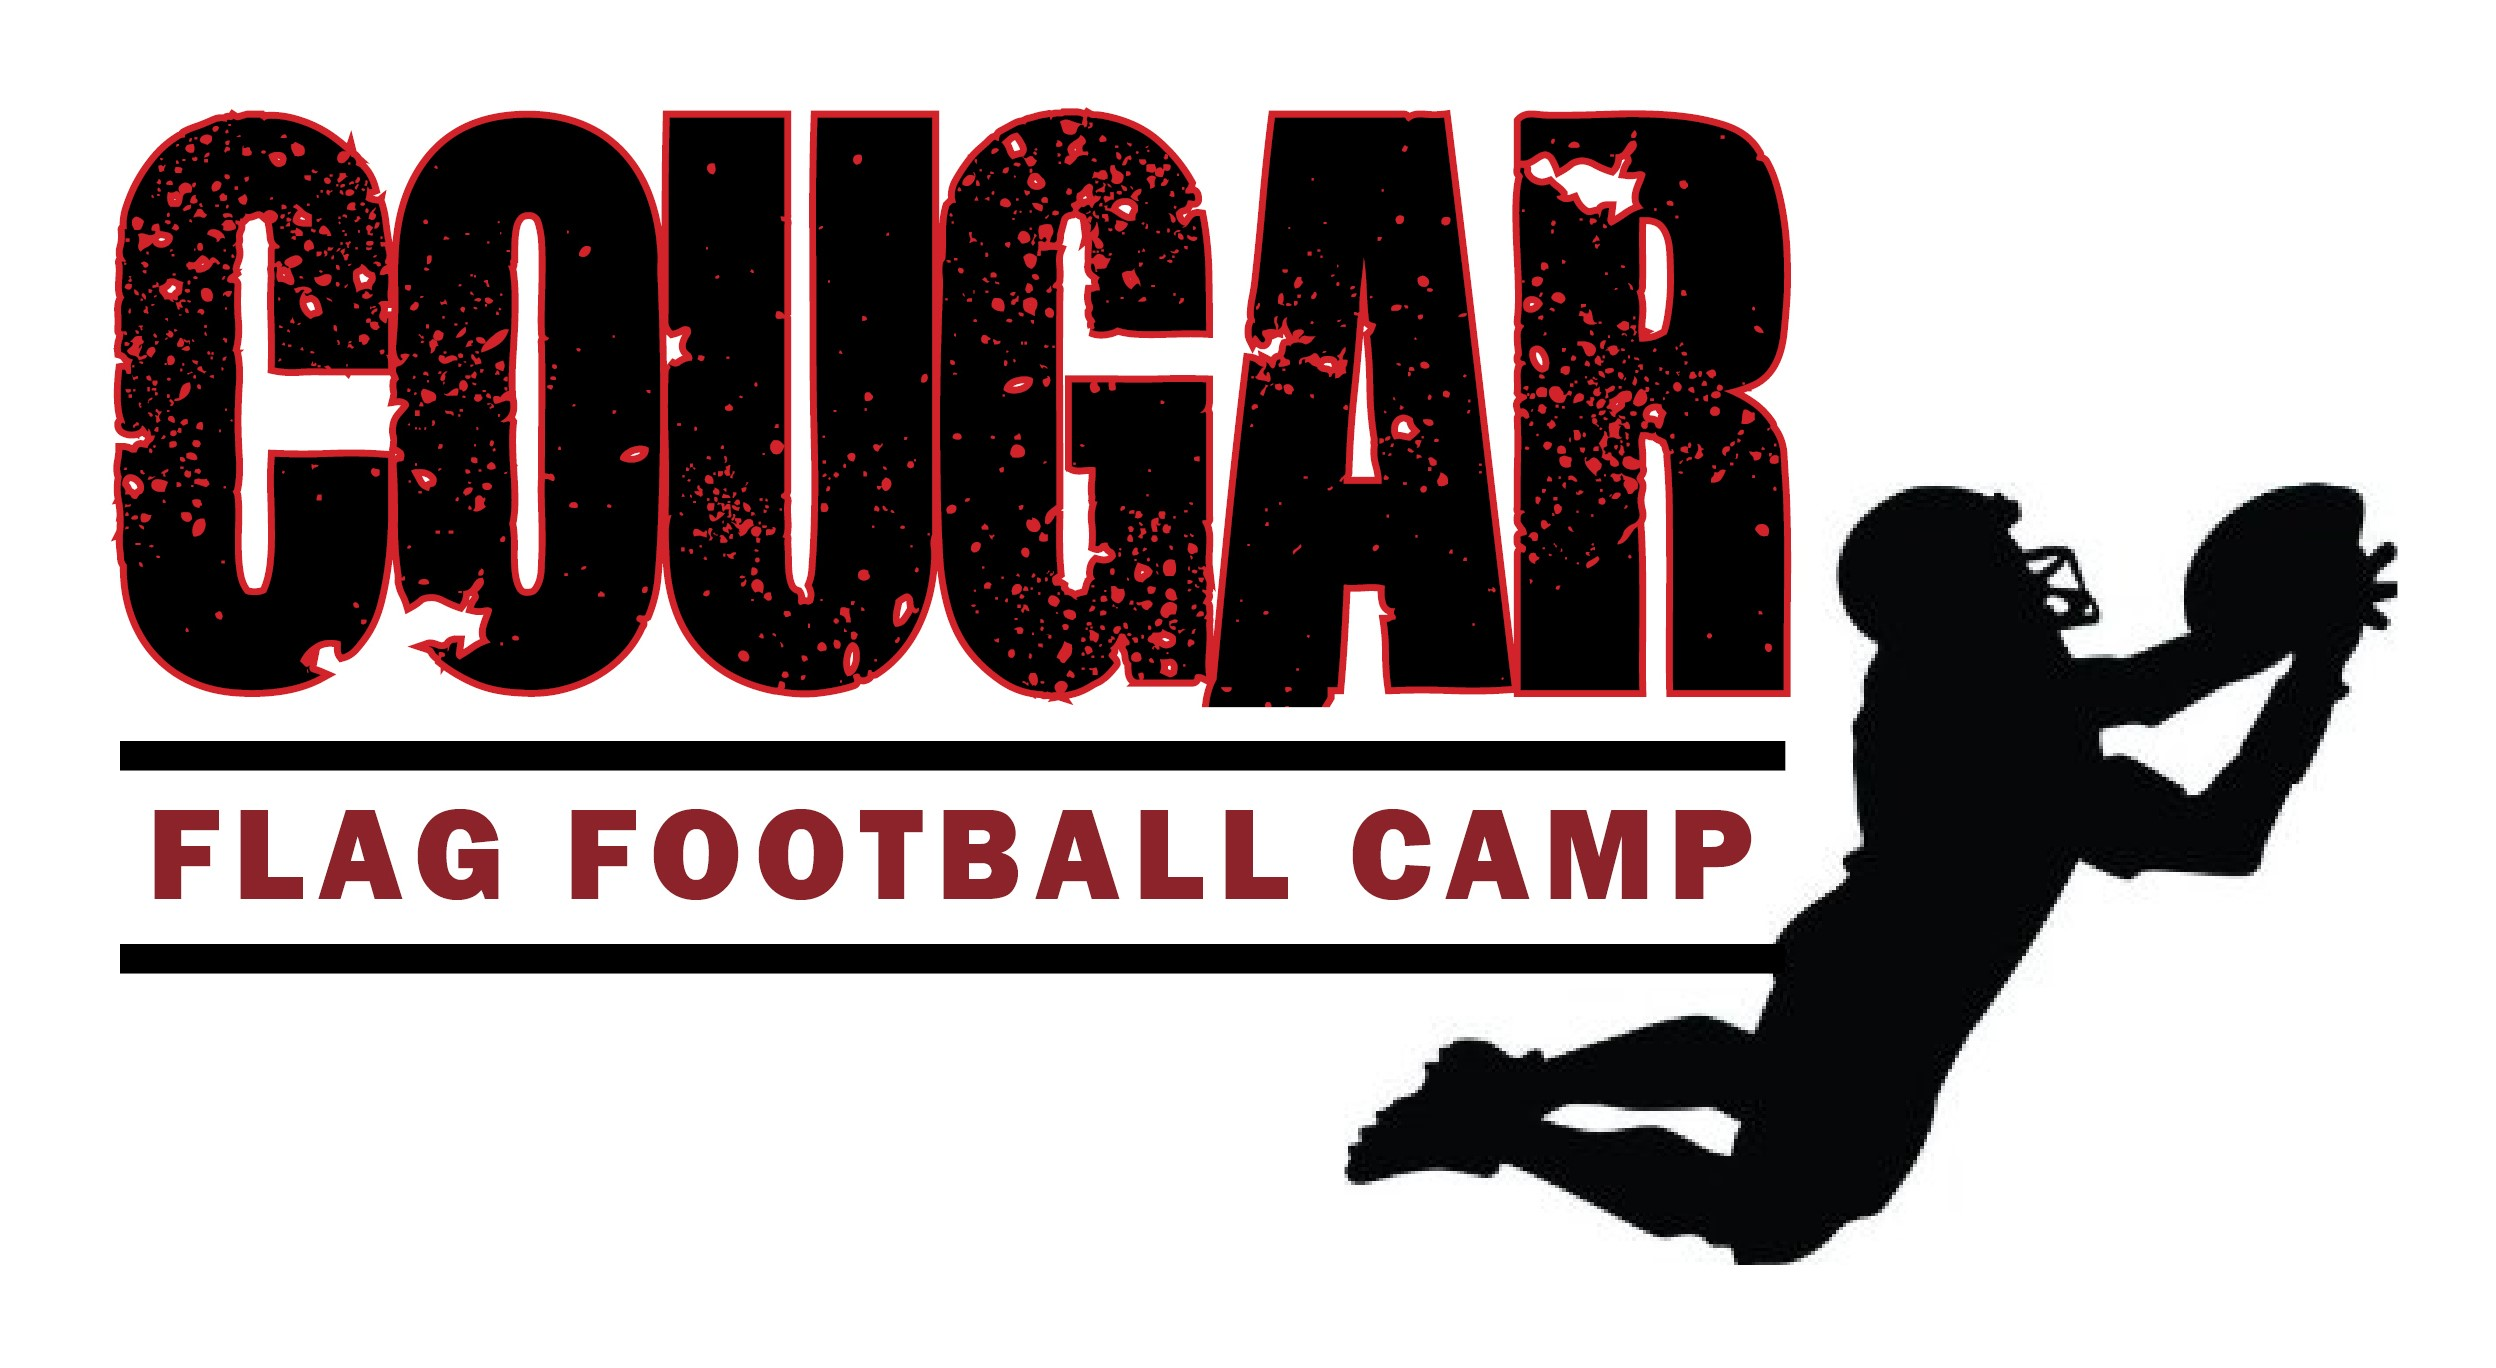 Cougar Flag Football Camp